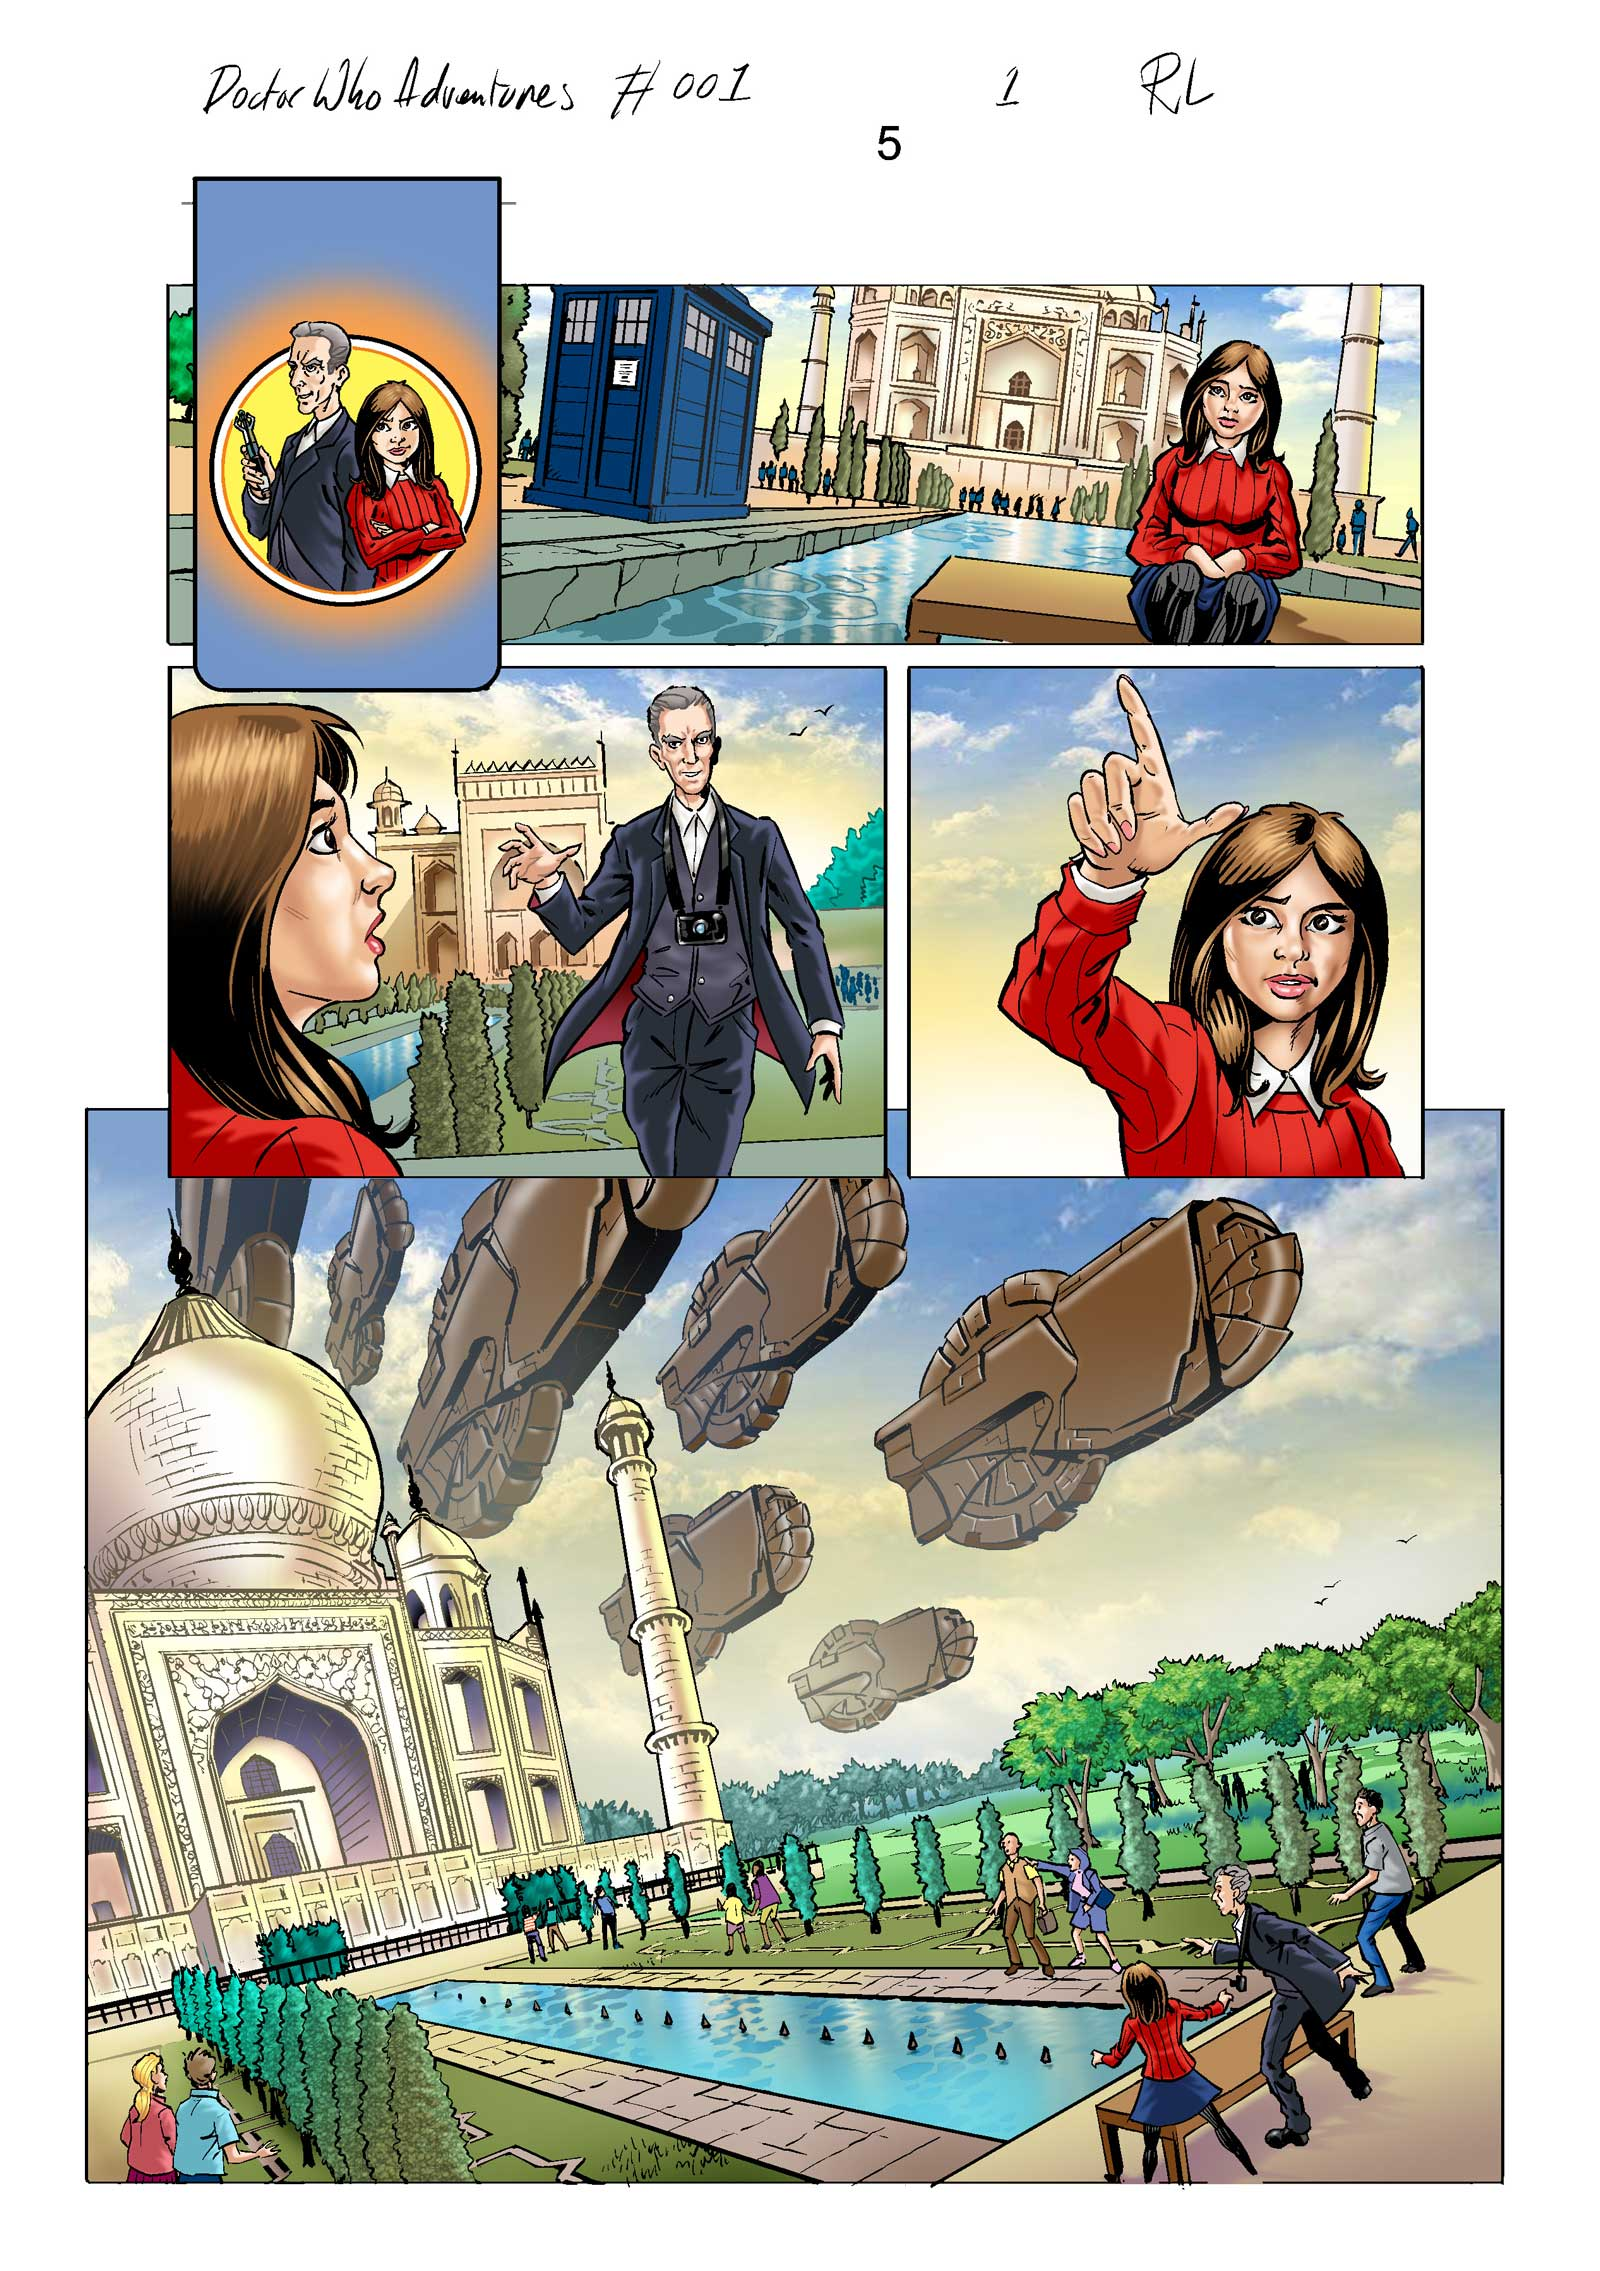 Work in progress on the strip for Doctor Who Adventures Issue One. Art by Russ Leach